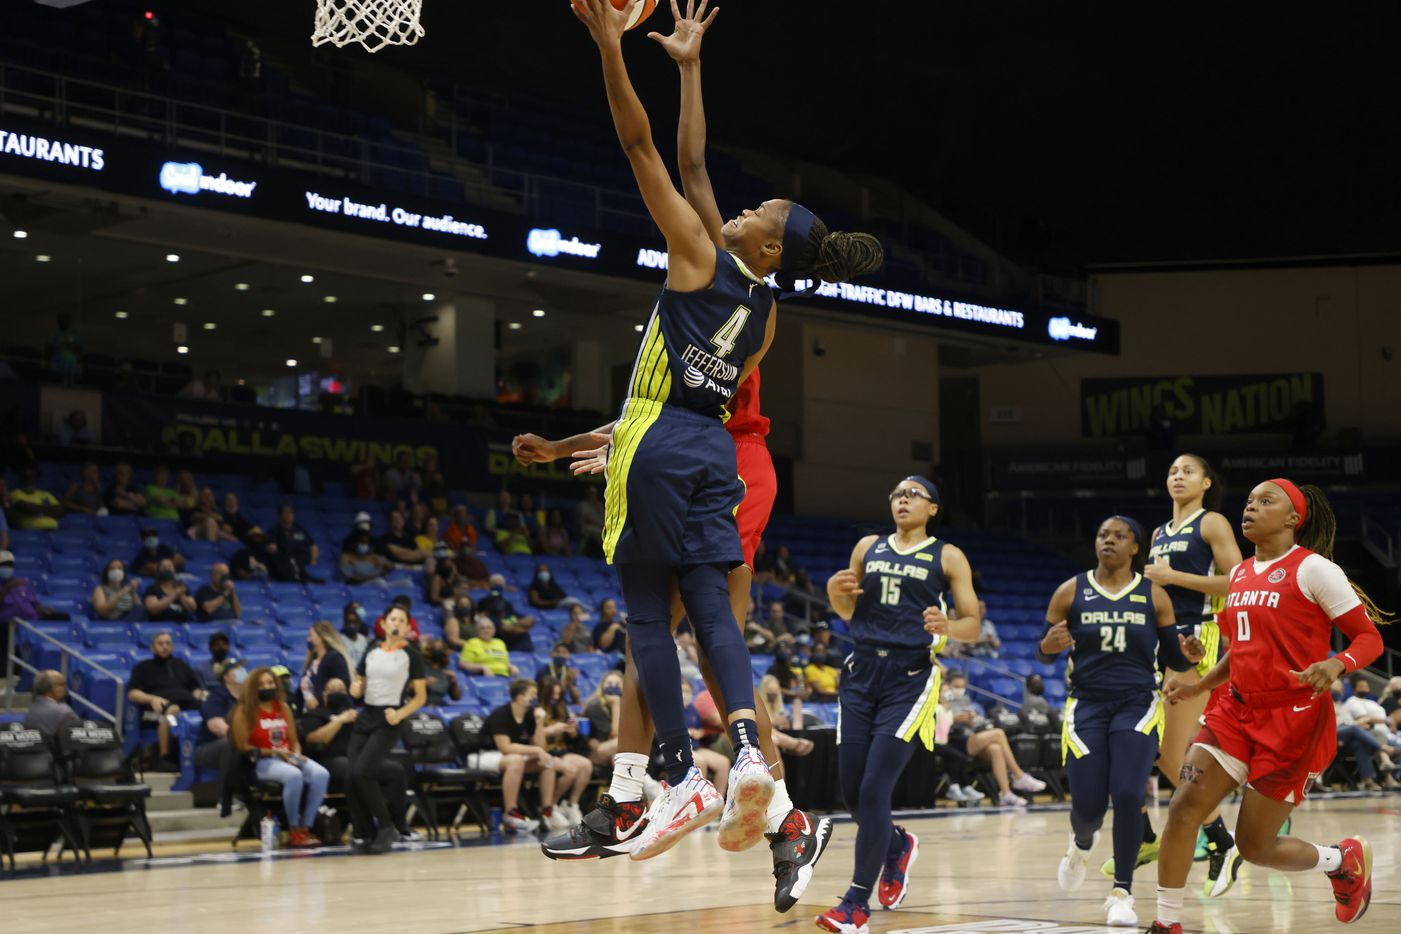 Dallas Wings guard Moriah Jefferson (4) makes a layup in front of Atlanta Dream guard Tiffany Hayes (15) during the first half of their WNBA basketball game in Arlington, Texas on Sept. 2, 2021. (Michael Ainsworth/Special Contributor)